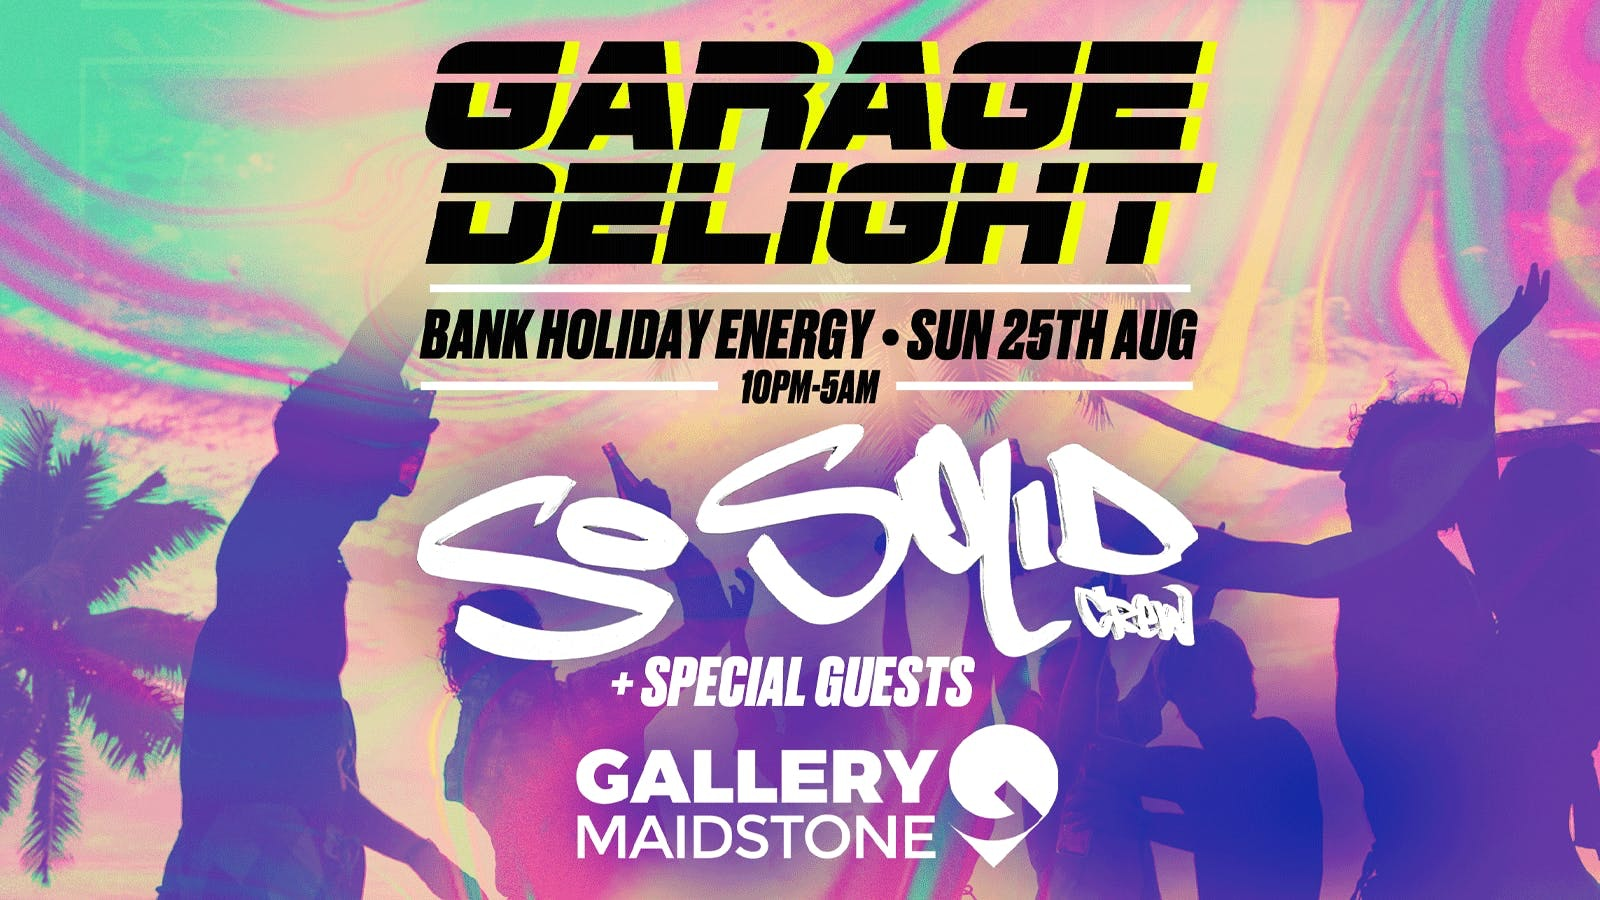 Garage Delight: So Solid Crew